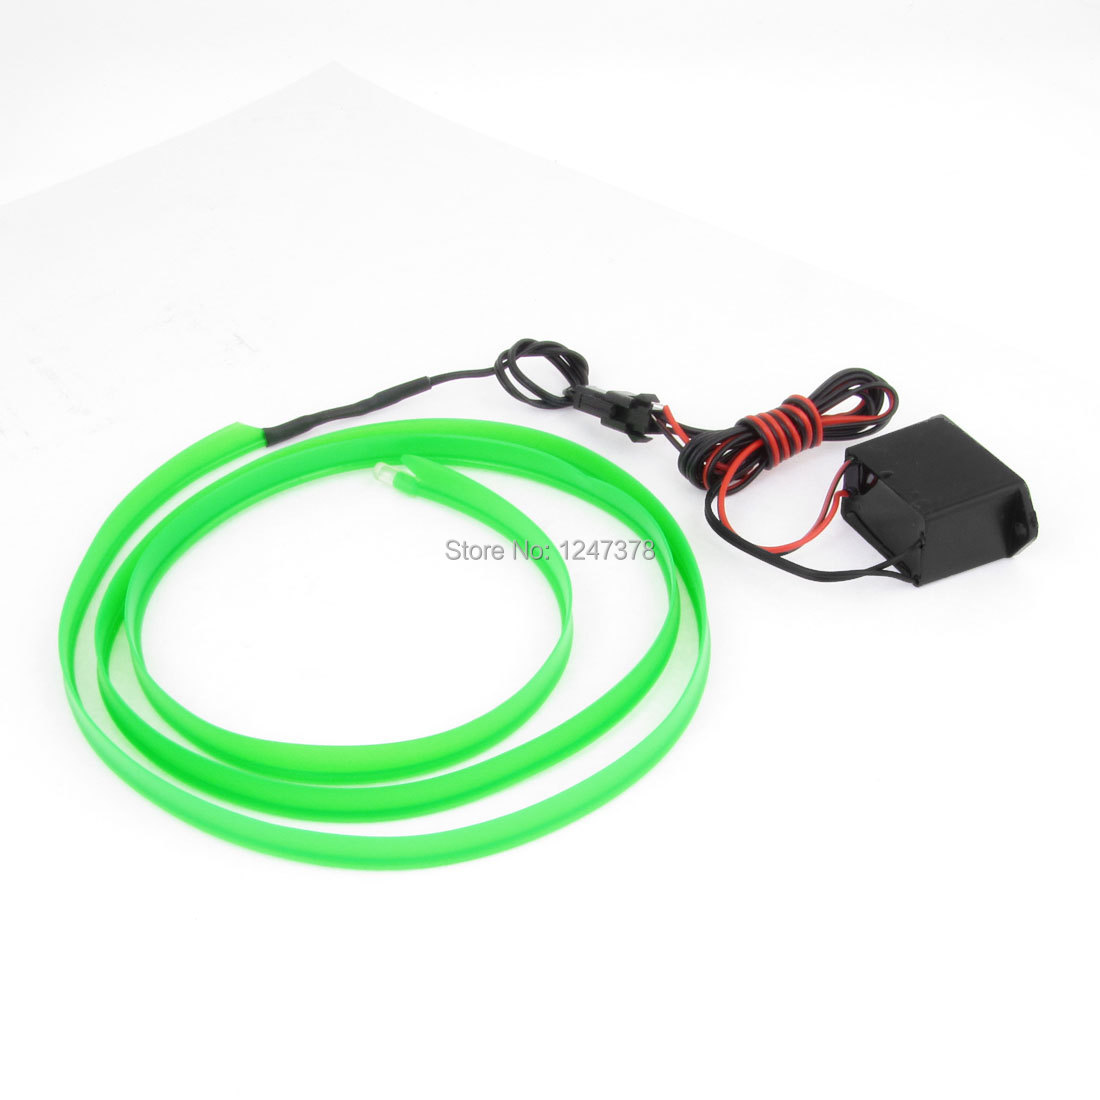 1 Meter Long 8mm Width Plastic Green EL Wire Neon Light Rope for Auto 1 Piece Decoration(China (Mainland))